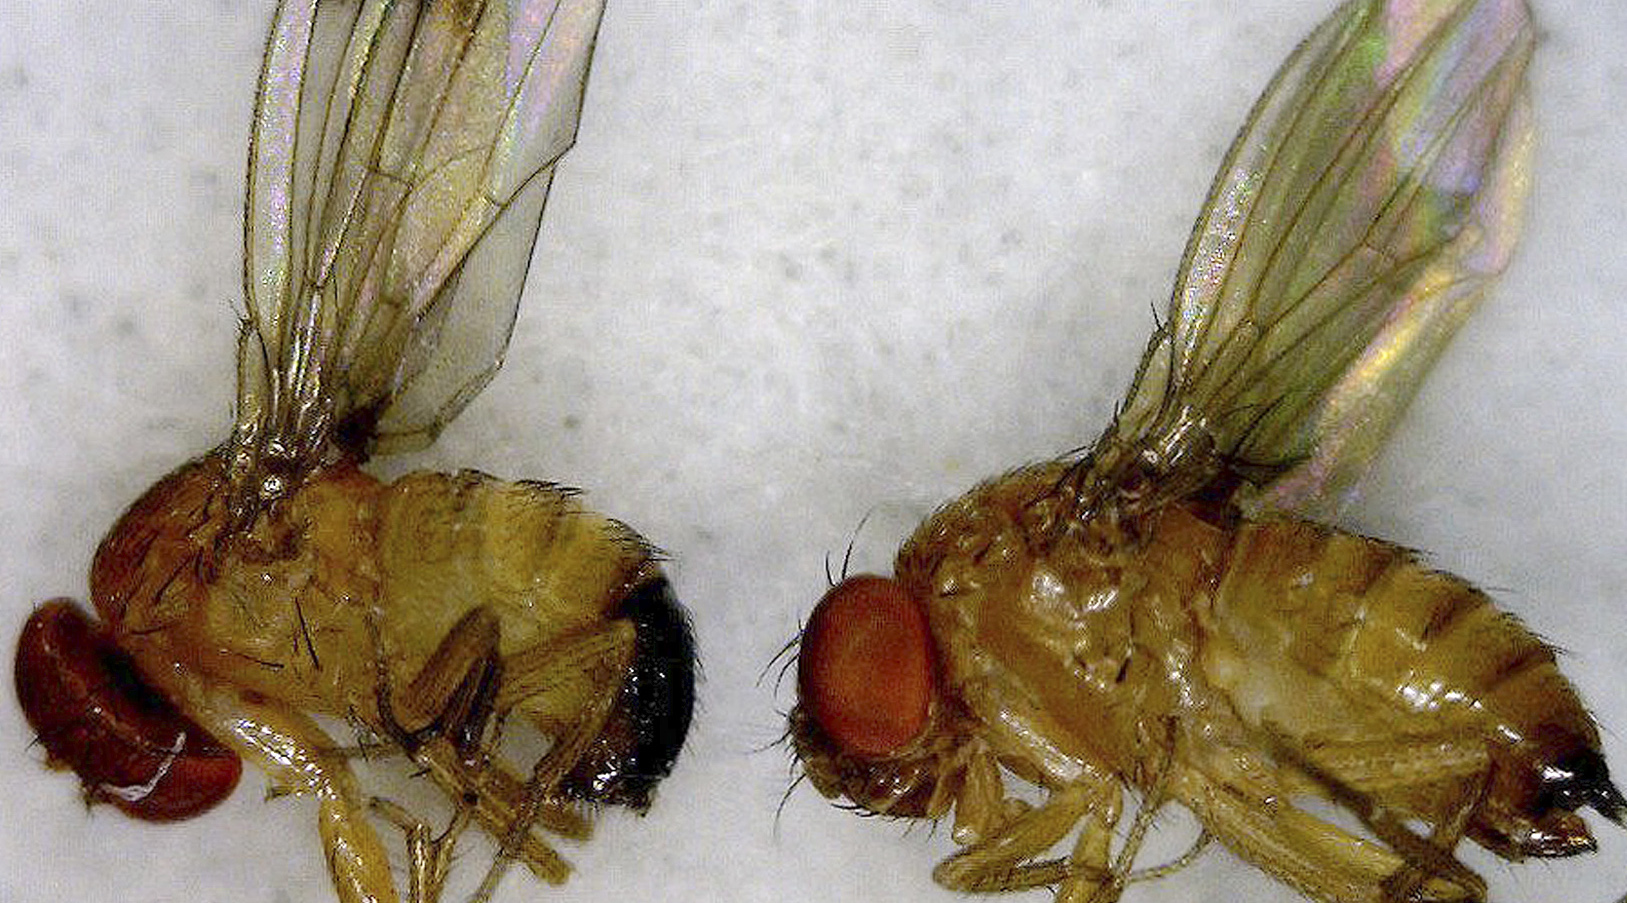 This July 2012 photo released by the University of Maine Cooperative Extension Service shows a male, left, and female, right, spotted wing drosophila, an invasive fruit fly.